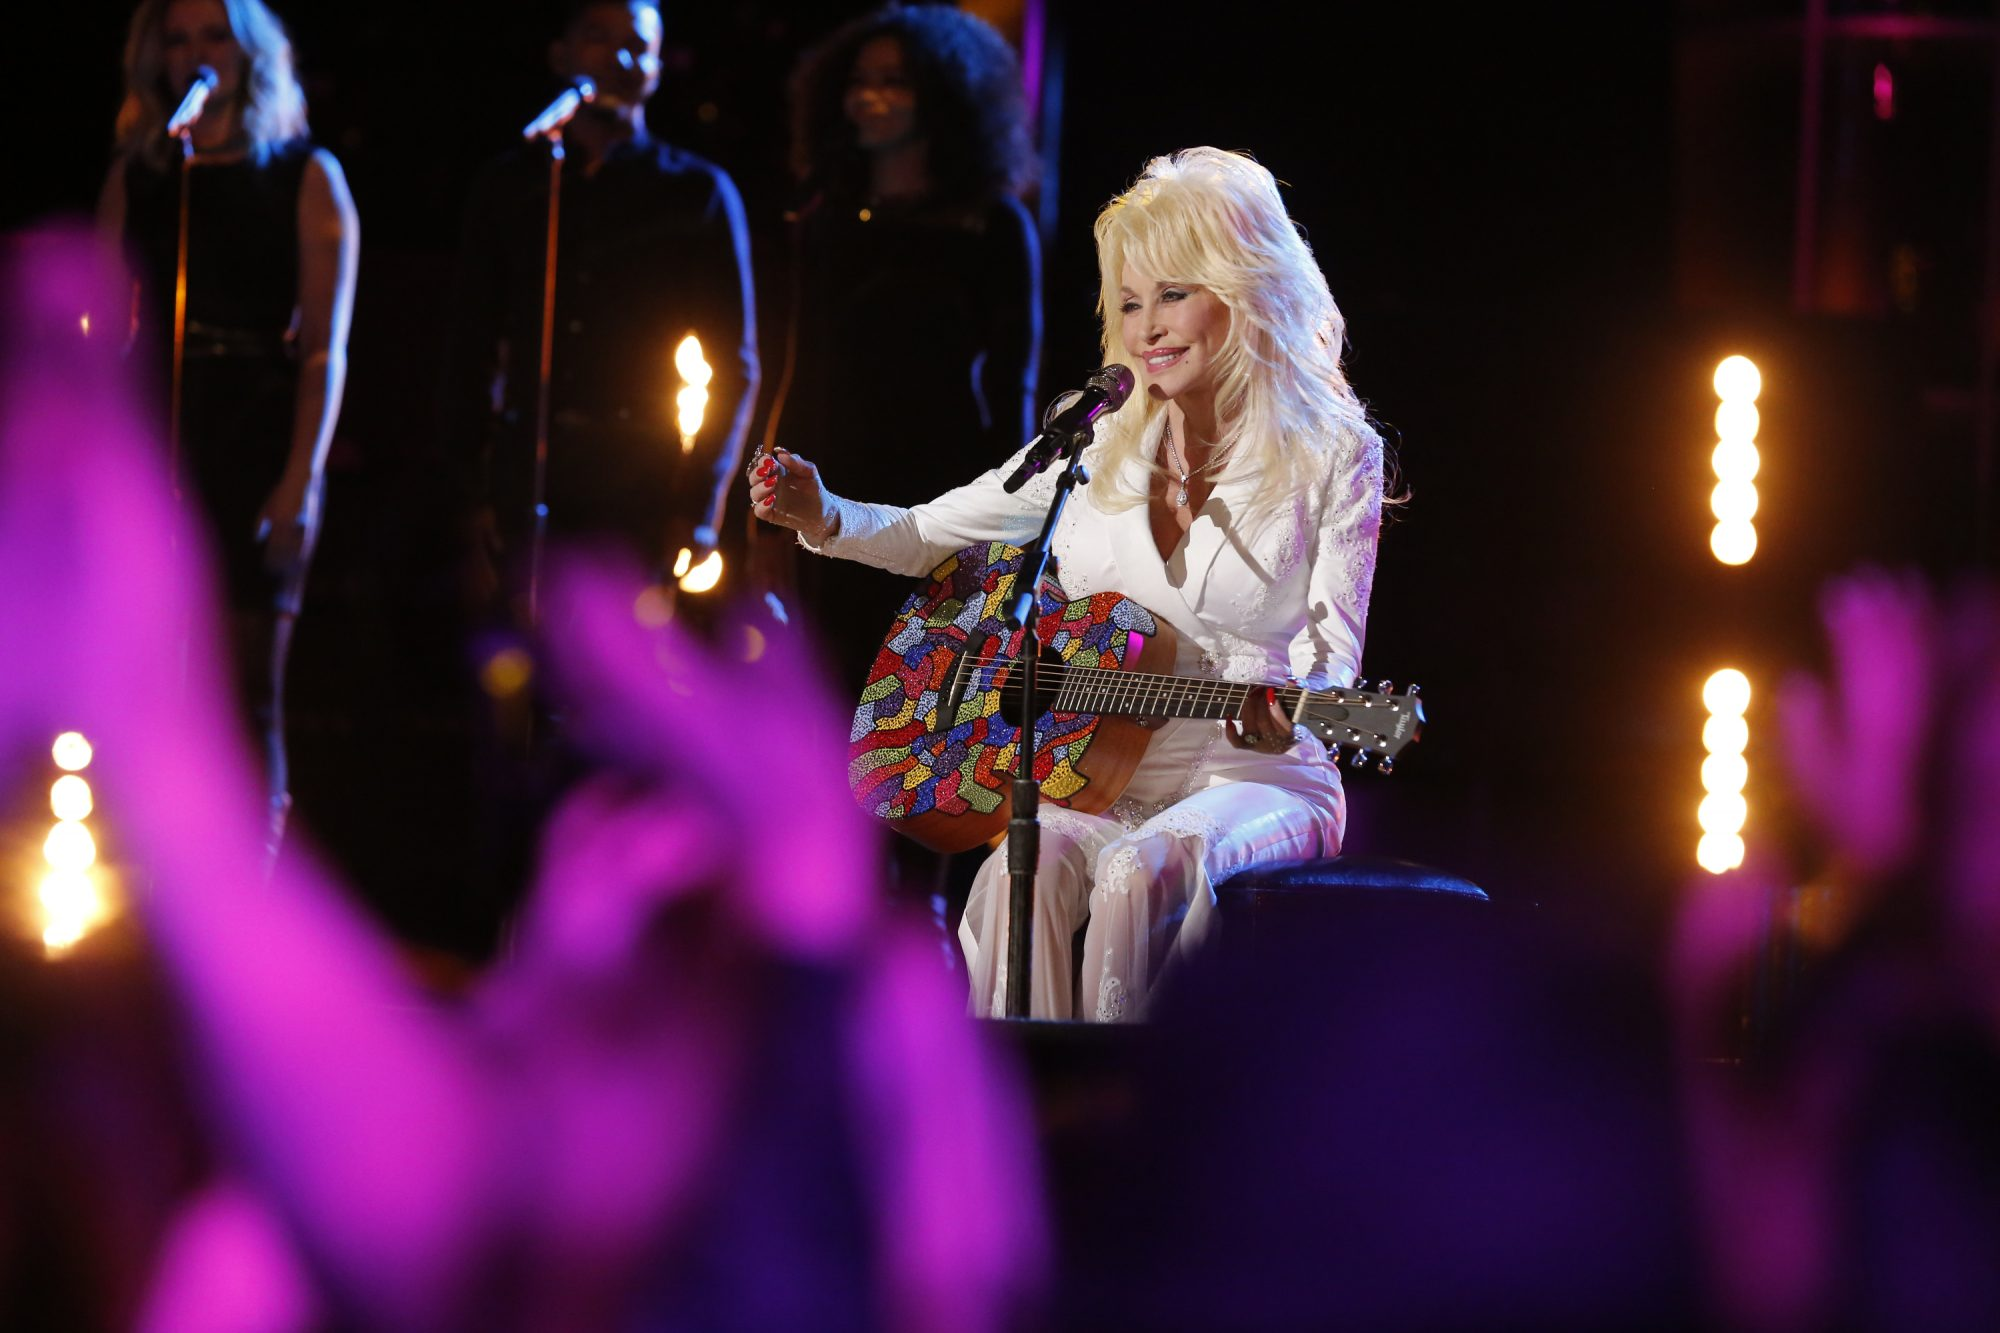 Dolly Parton's Husband Isn't That Into His Wife's Music